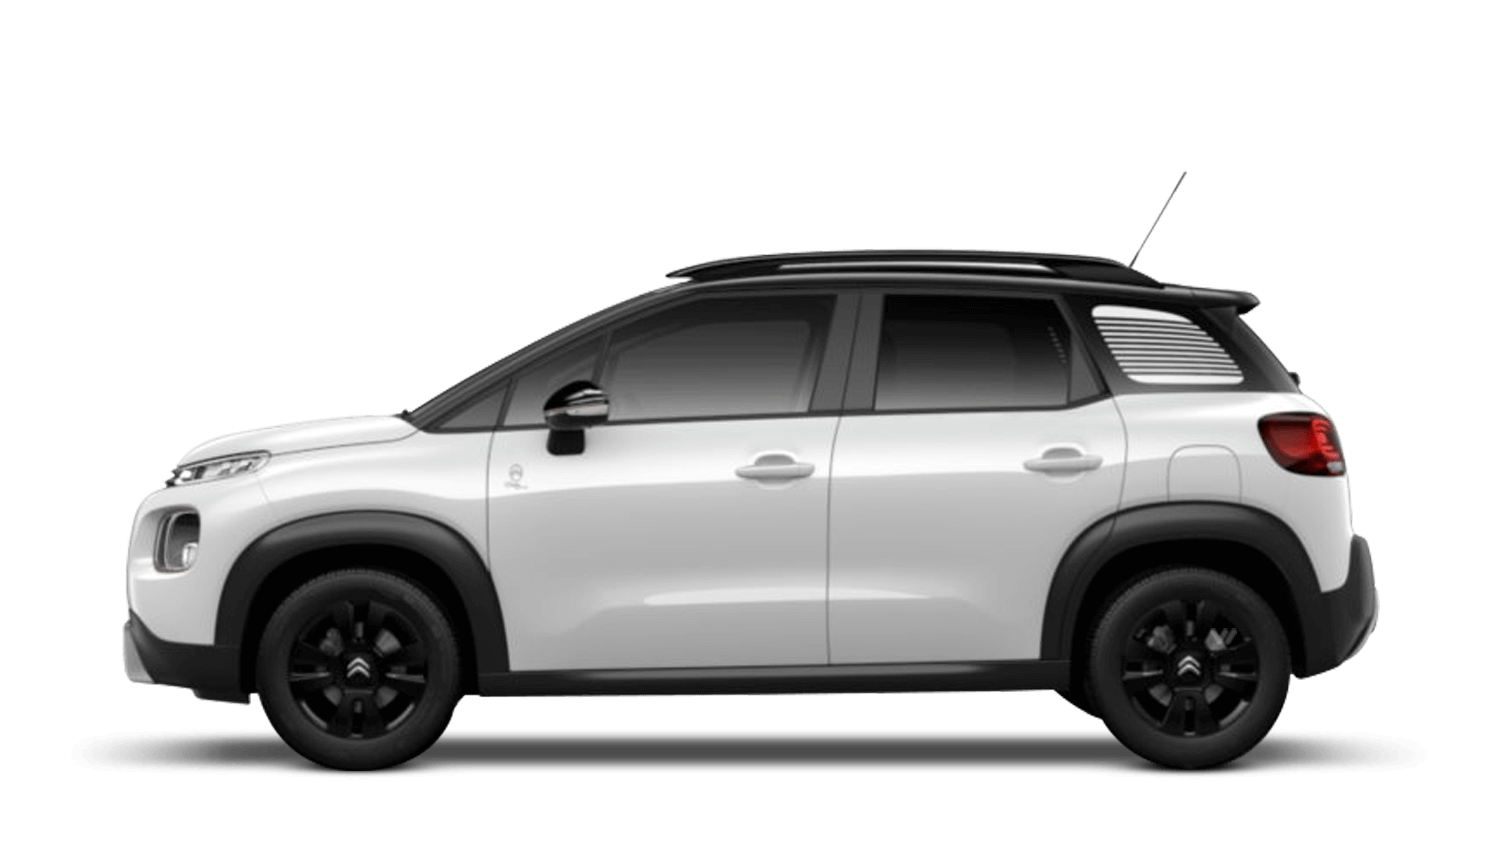 Natural White Citroën C3 Aircross Suv